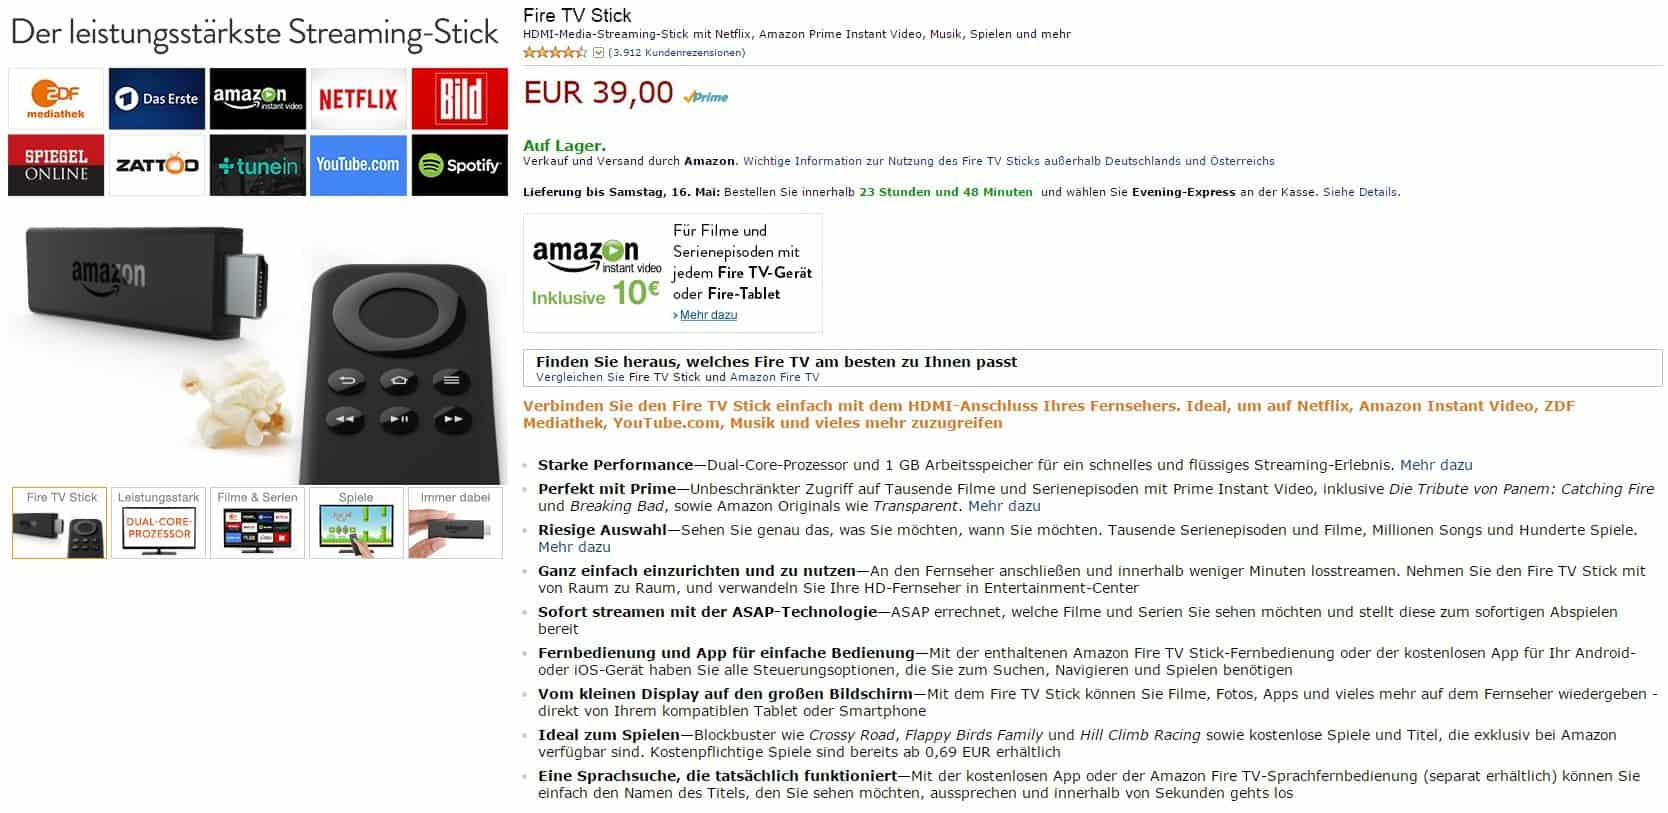 Amazon FireTV-Stick für 39€ - Amazon Instant Video Gutschein